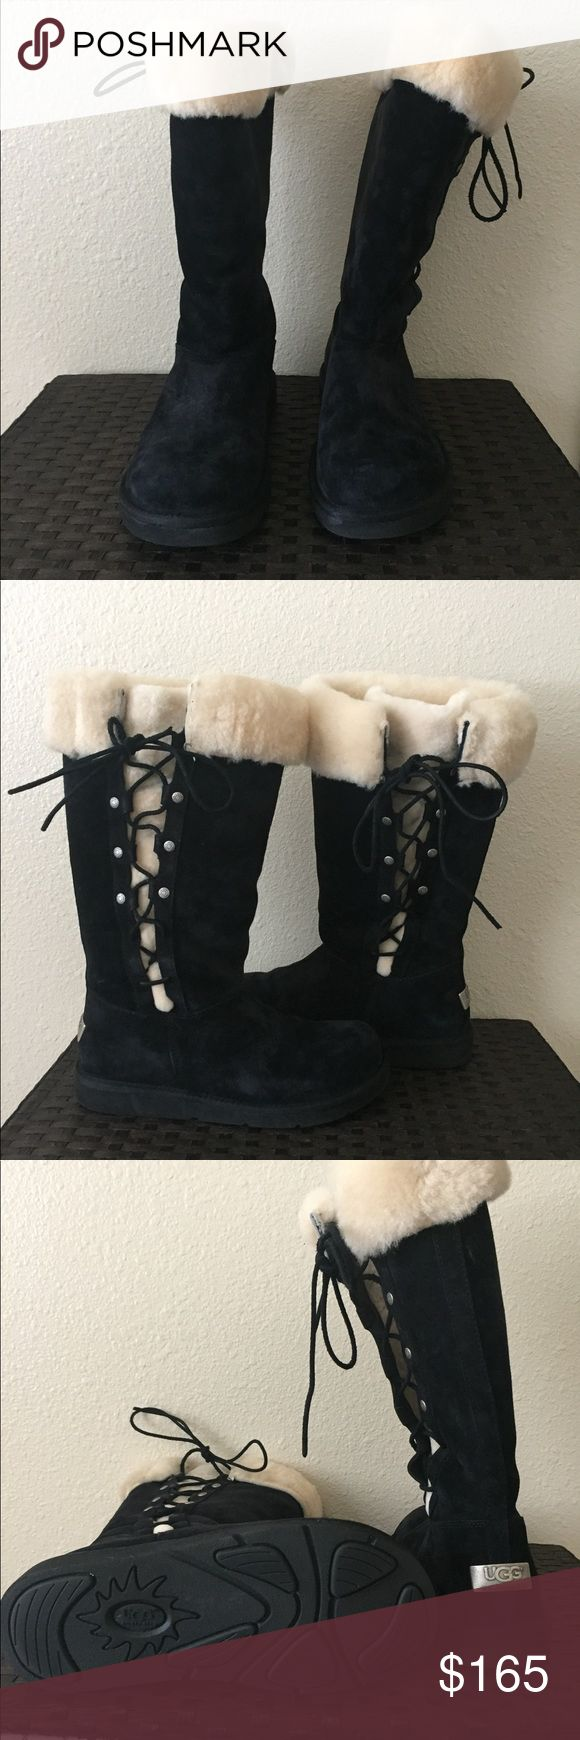 Gorgeous Ugg boots Gorgeous Ugg boots! Just in time for winter! These boots have only been worn twice!! Kept in a nice plastic shoe box. Tiniest black leather from laces rubbed onto faux fur. Don't miss out on this great deal! UGG Shoes Lace Up Boots